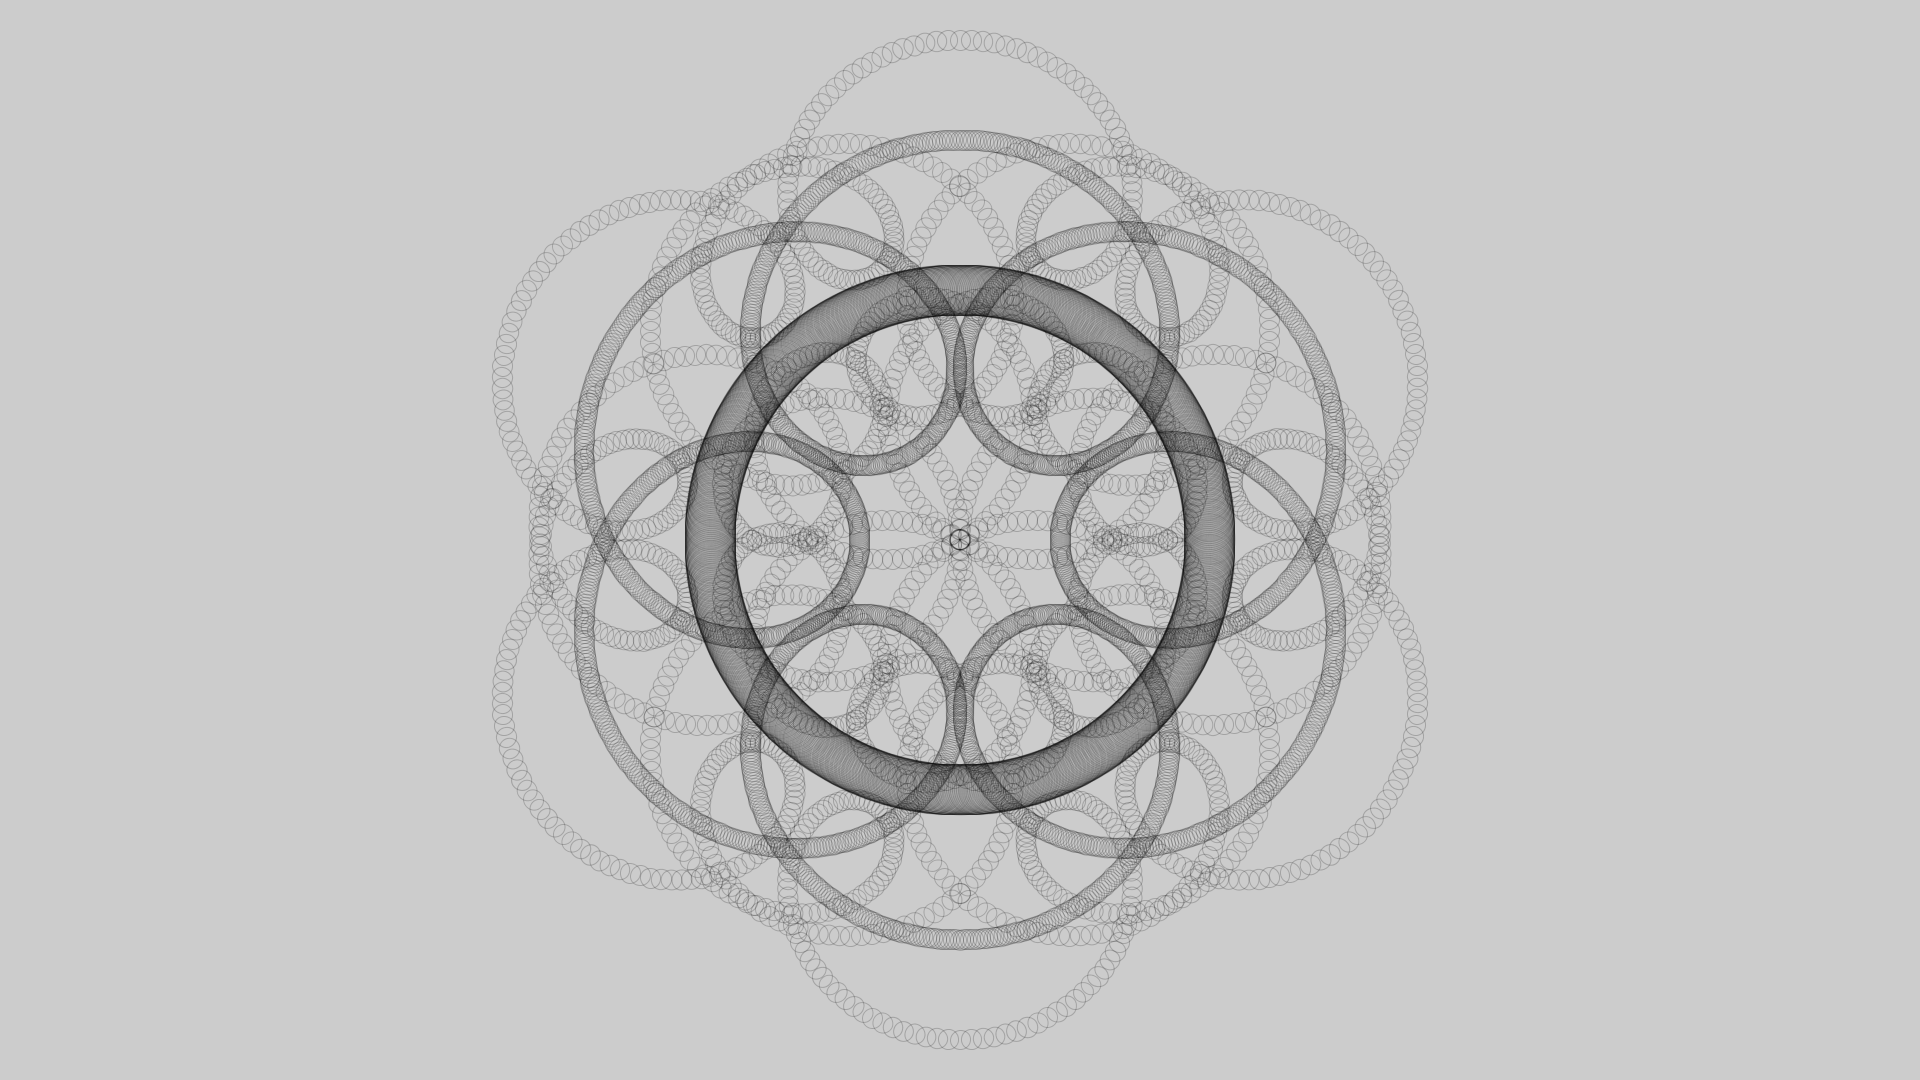 orrery-2015-3-23-11-39-532400-400-100.png